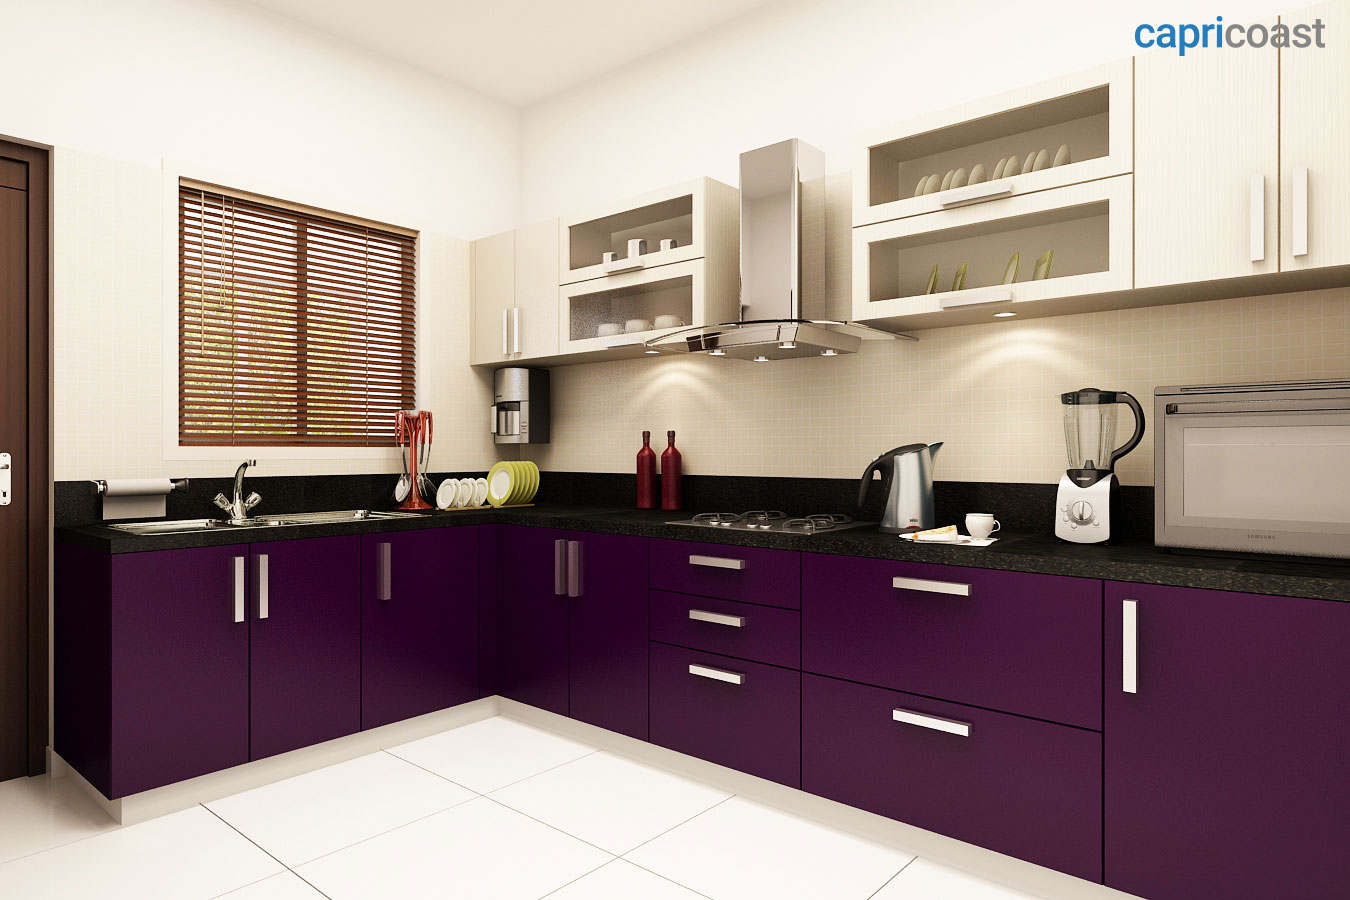 Design Decor Amp Disha